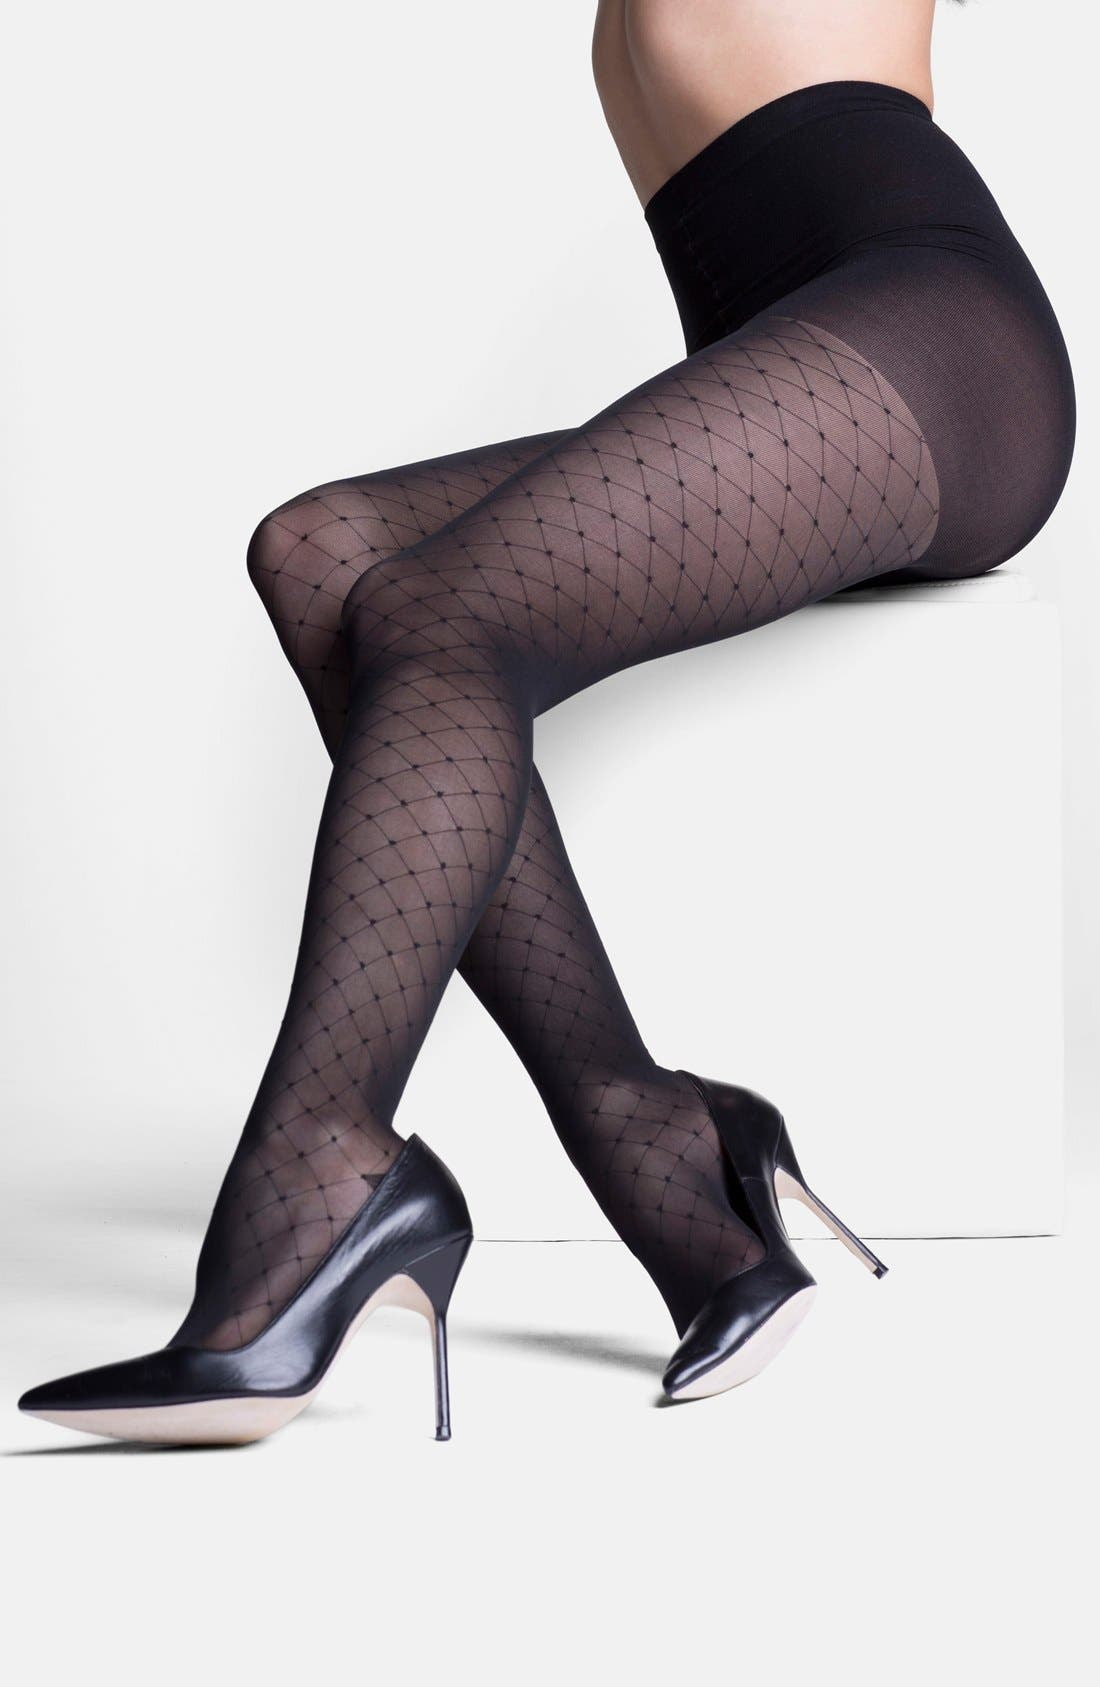 Alternate Image 2  - INSIGNIA by SIGVARIS 'Starlet' Diamond Pattern Compression Pantyhose